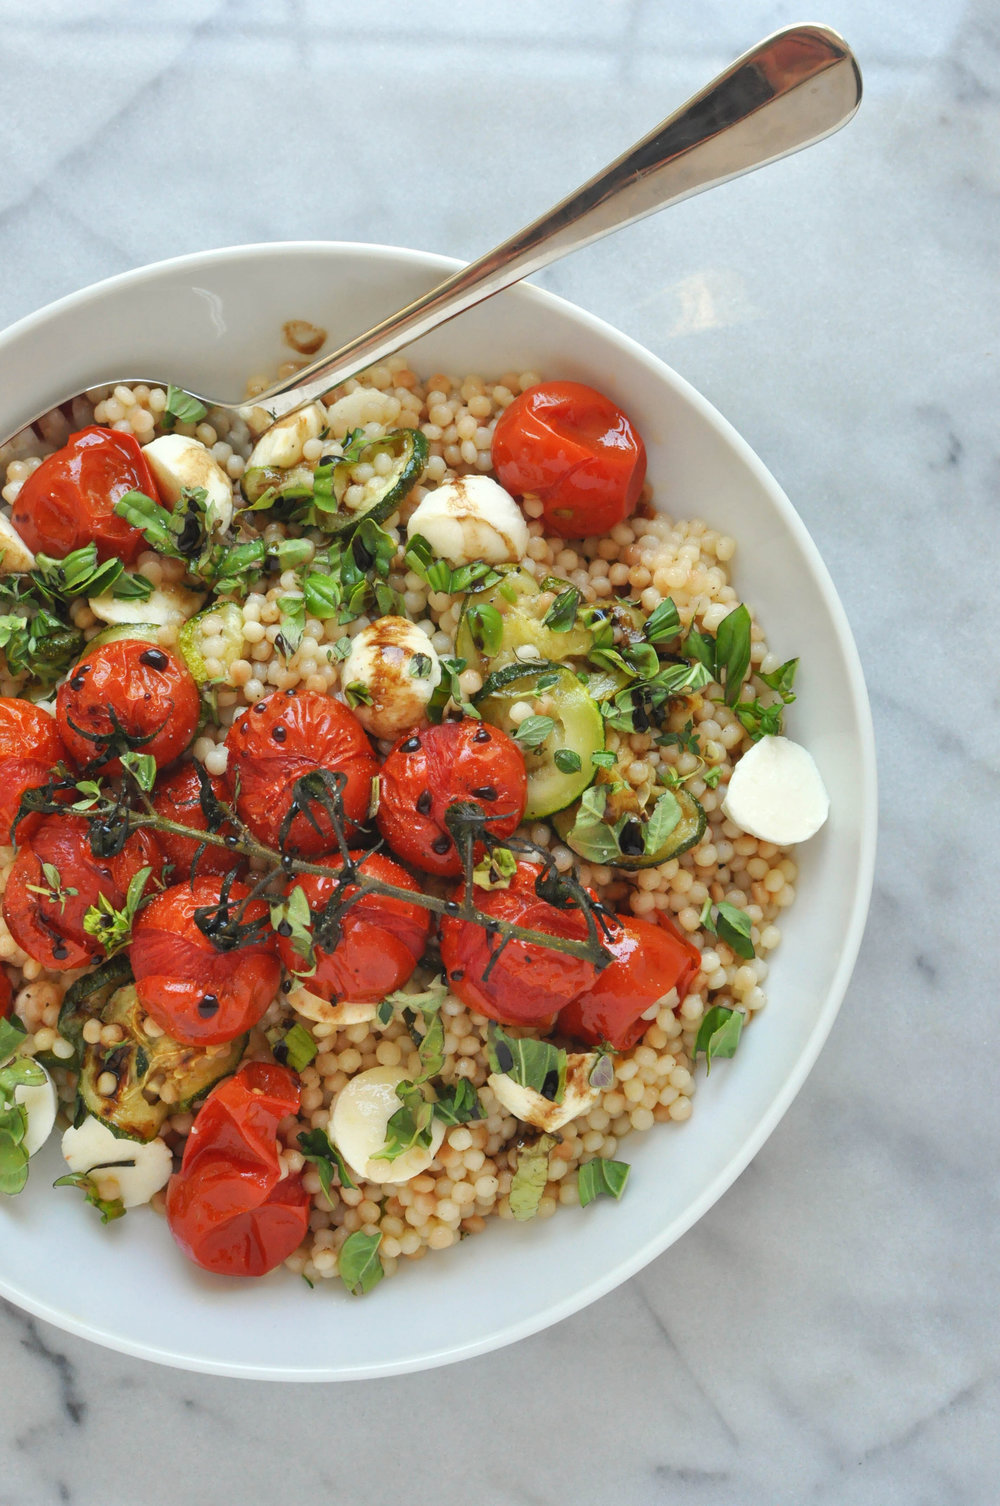 Israeli Couscous Salad with Zucchini, Mozzarella, and Tomatoes (vegetarian, summer salad, healthy) | Shiny Happy Bright